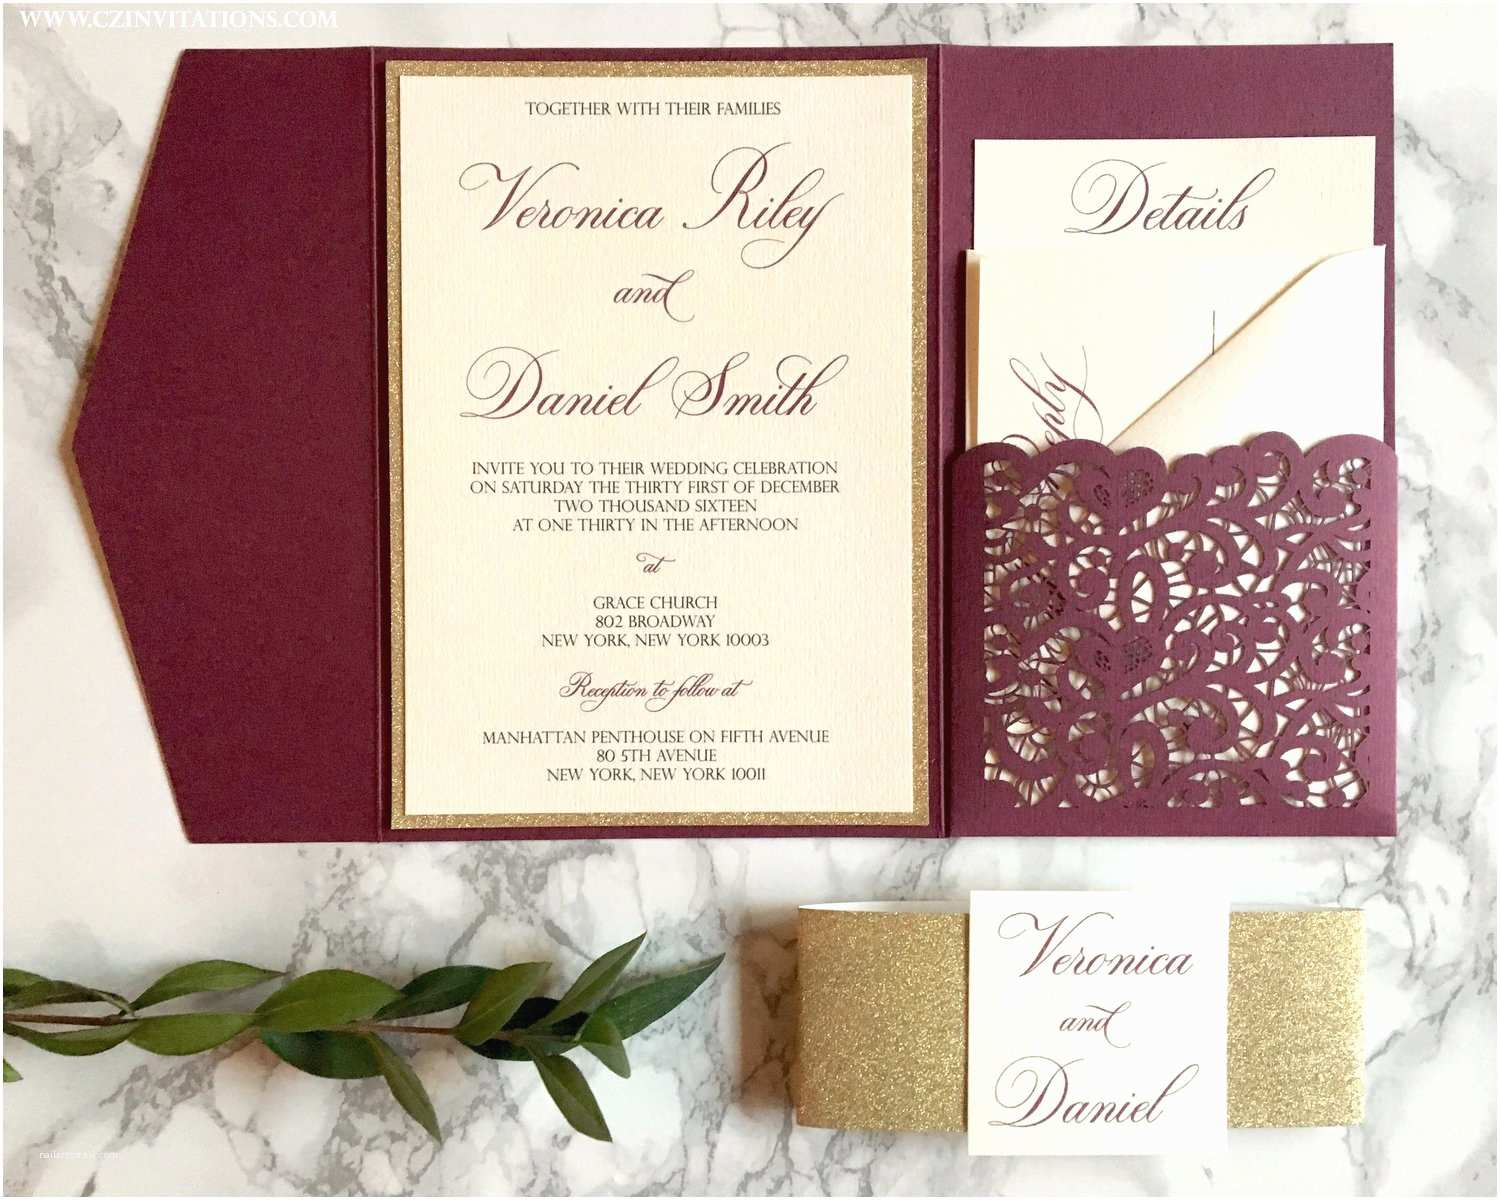 Burgundy themed Wedding Invitations Burgundy and Gold Laser Cut Pocket Wedding Invi with